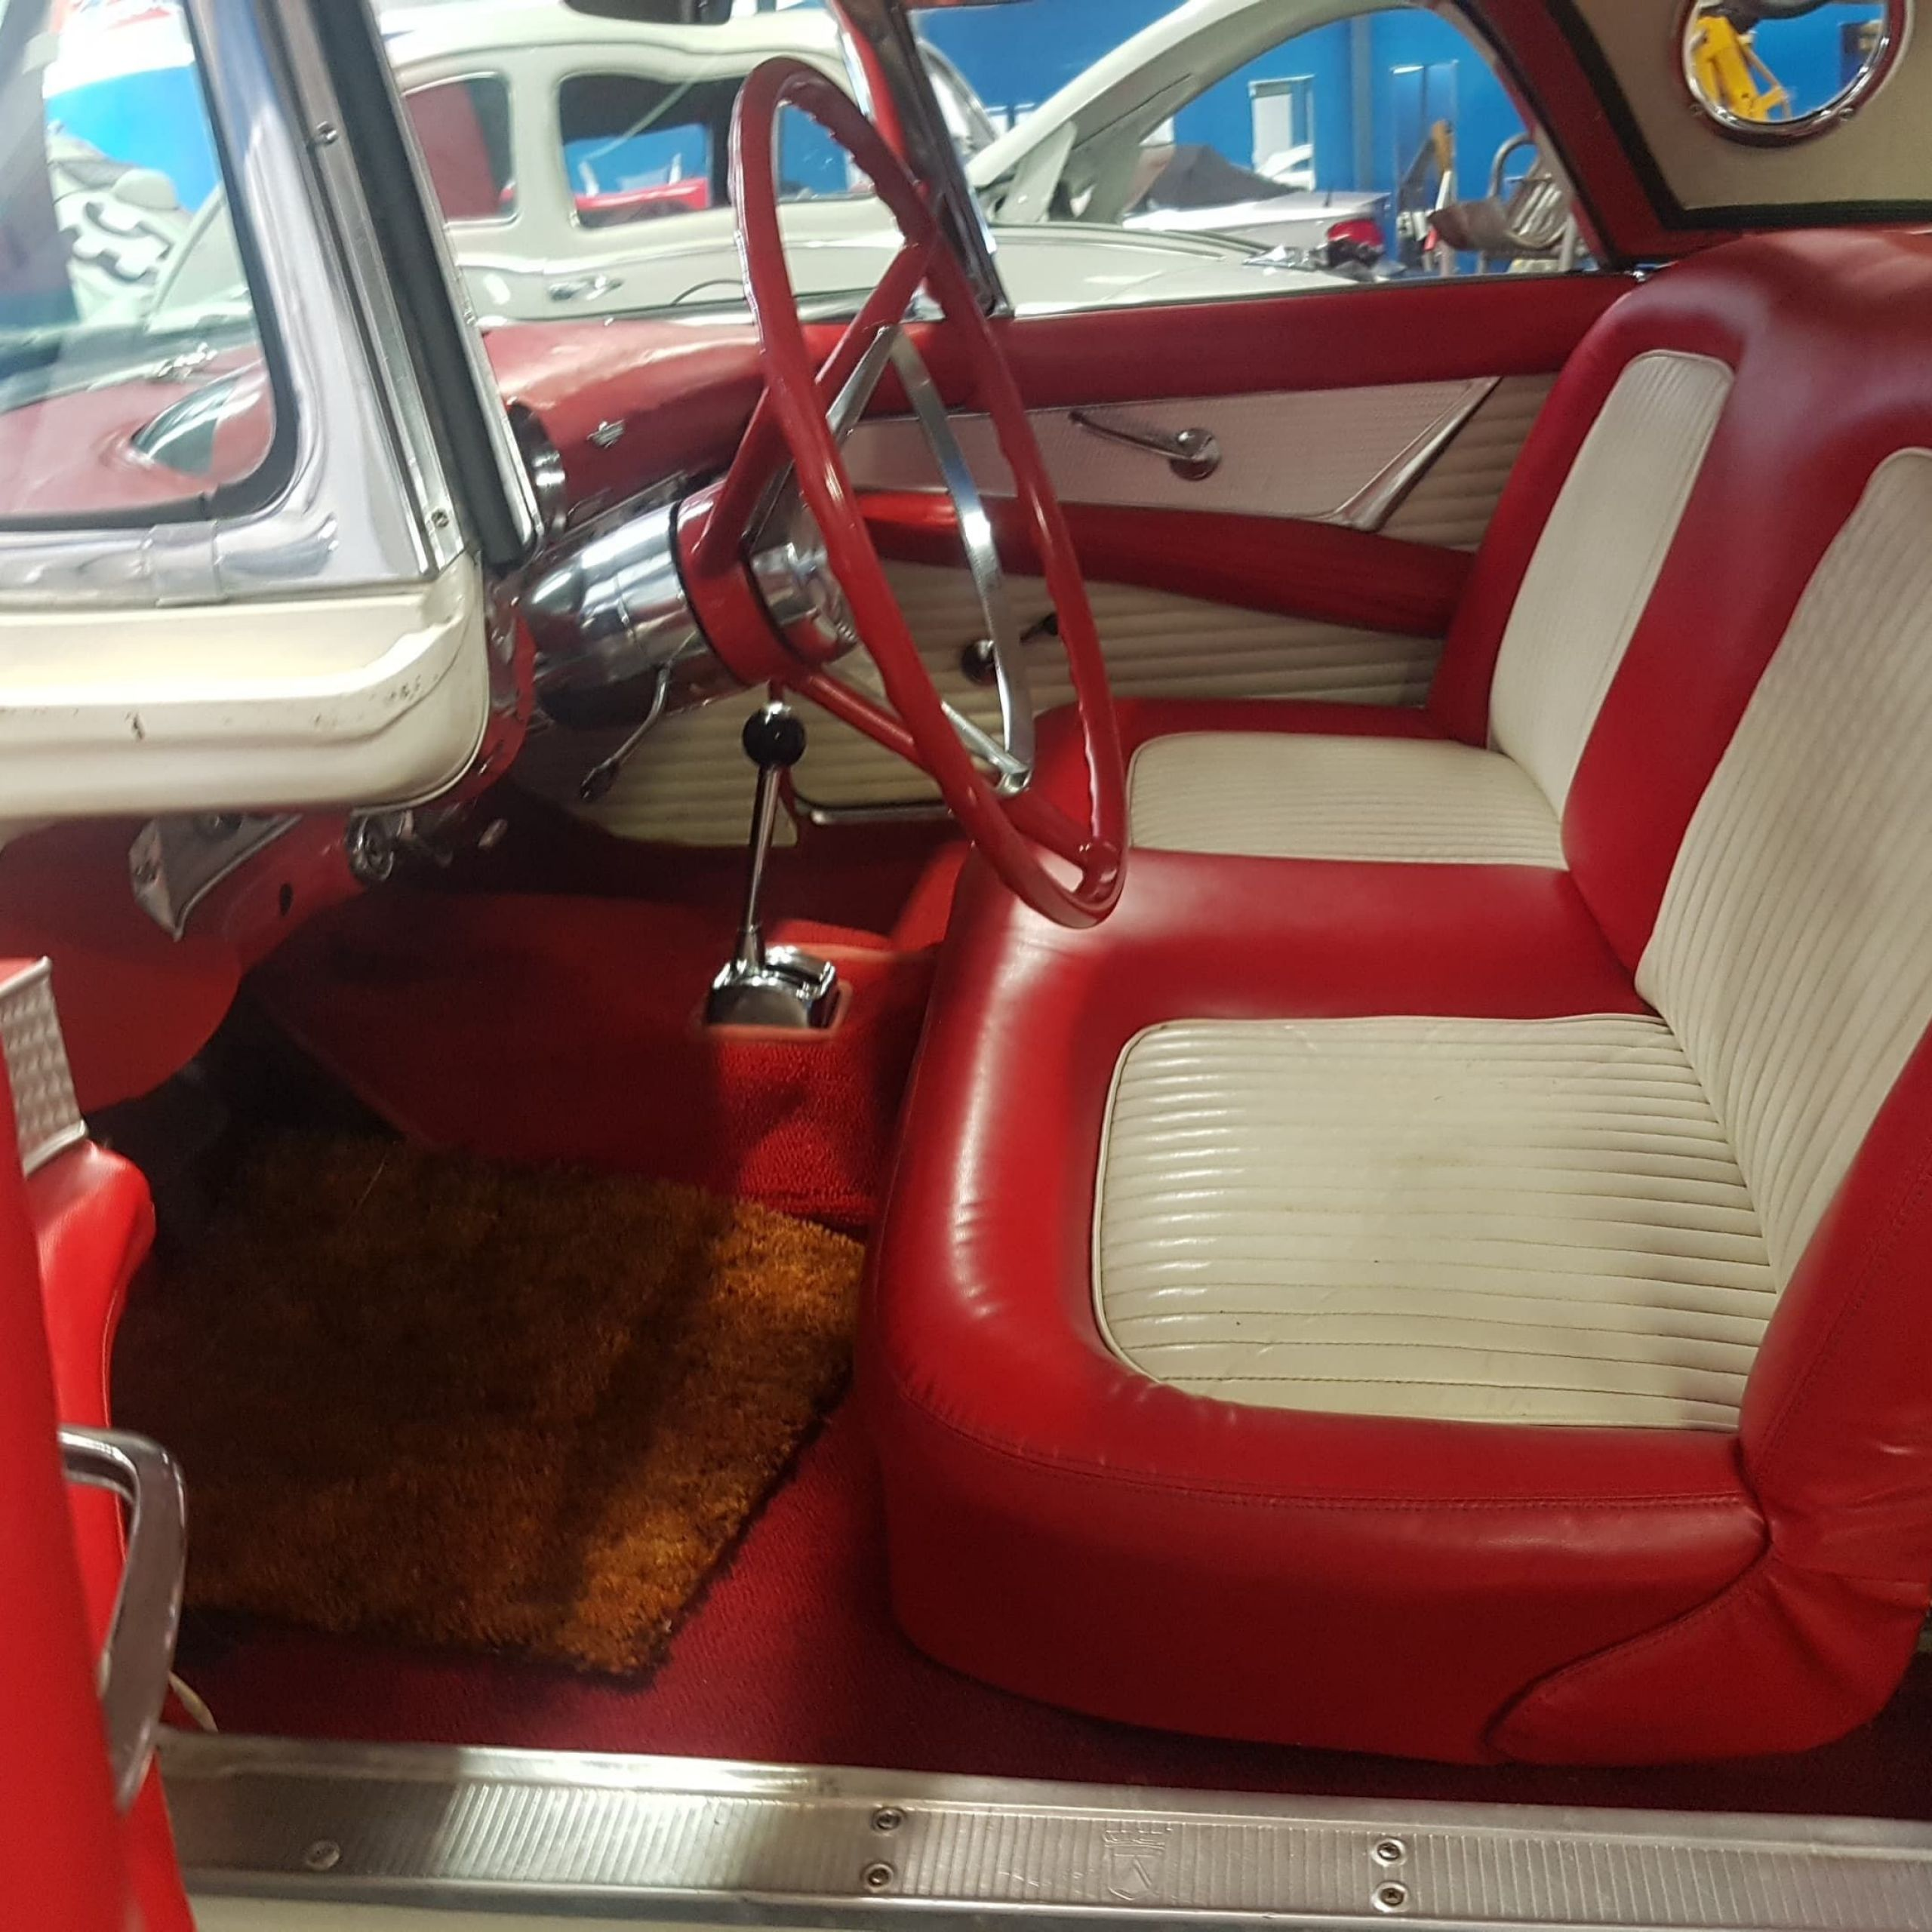 Volvo Used Cars for Sale Near Me New 1955 ford Thunderbird Auto $85 000 Cars